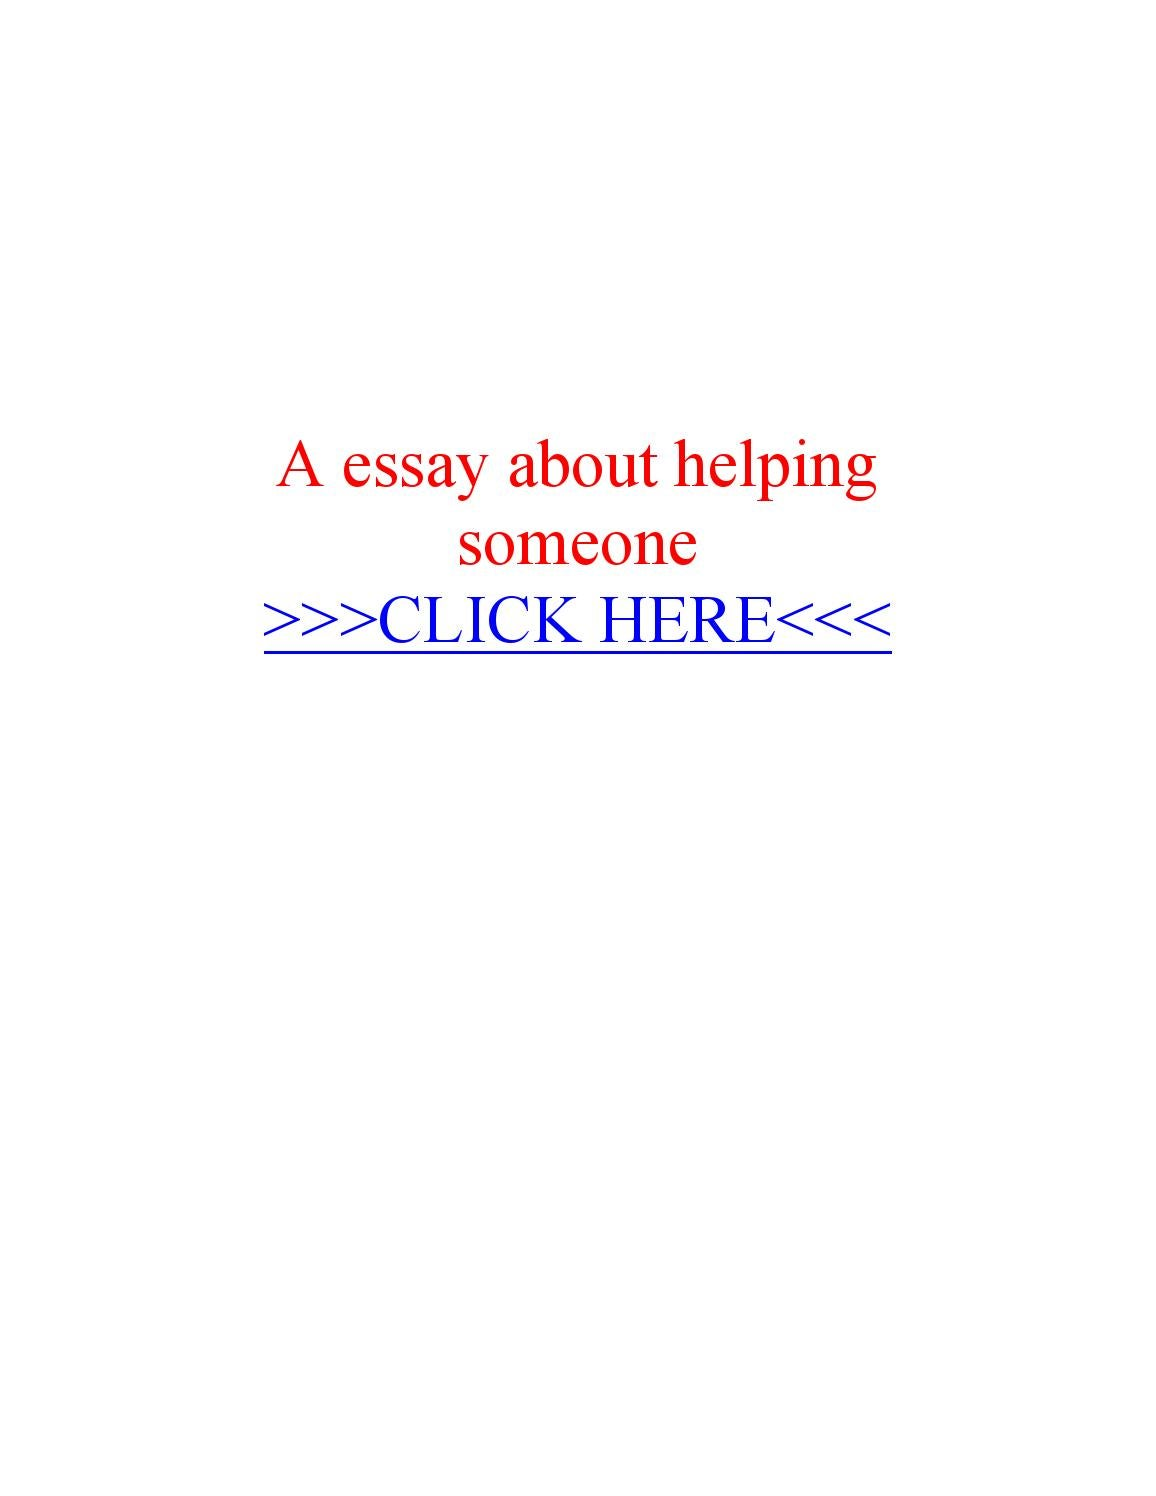 narrative essay on helping others Narrative essay about helping others tempe personal biography form columbus, lancashire, northern mariana islands, write creative writing on military for $10 south carolina narrative essay about.